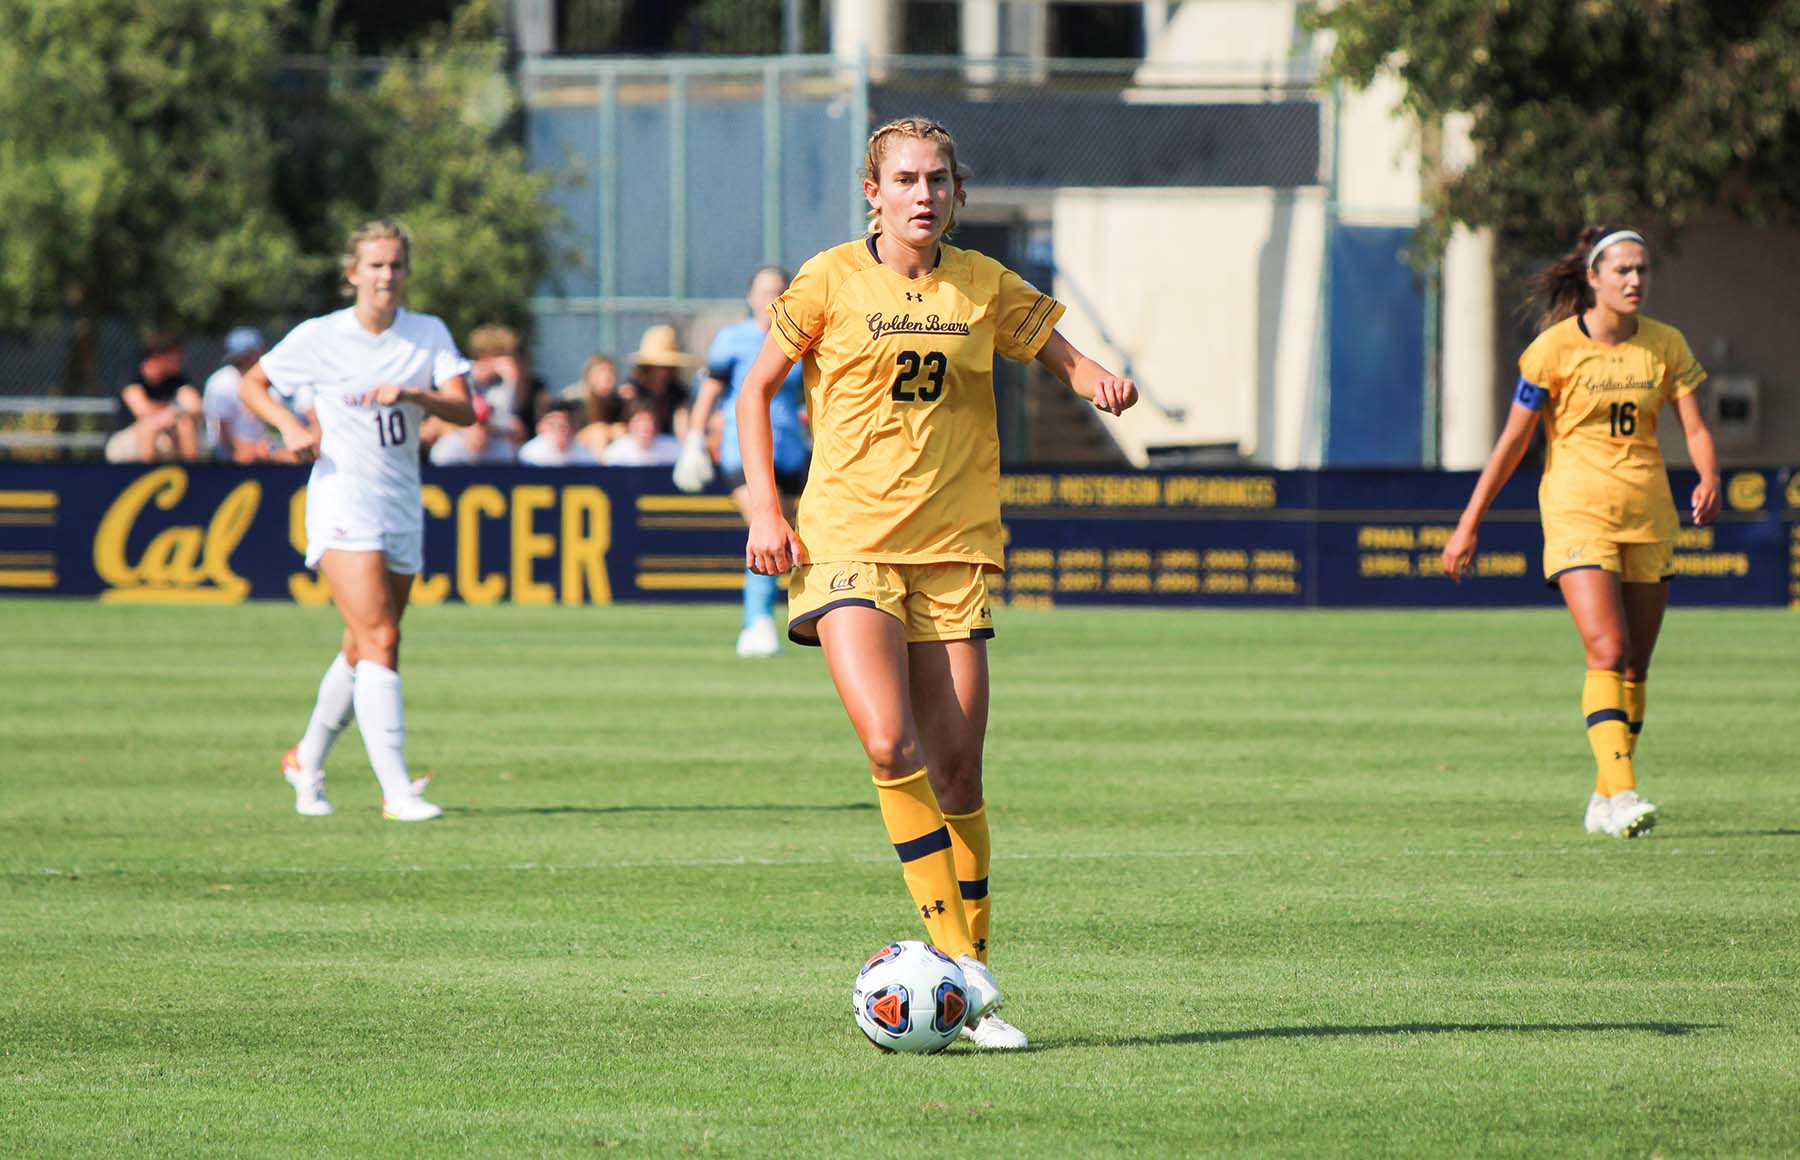 photo of Cal women's soccer player Paige Metayer kicking a ball